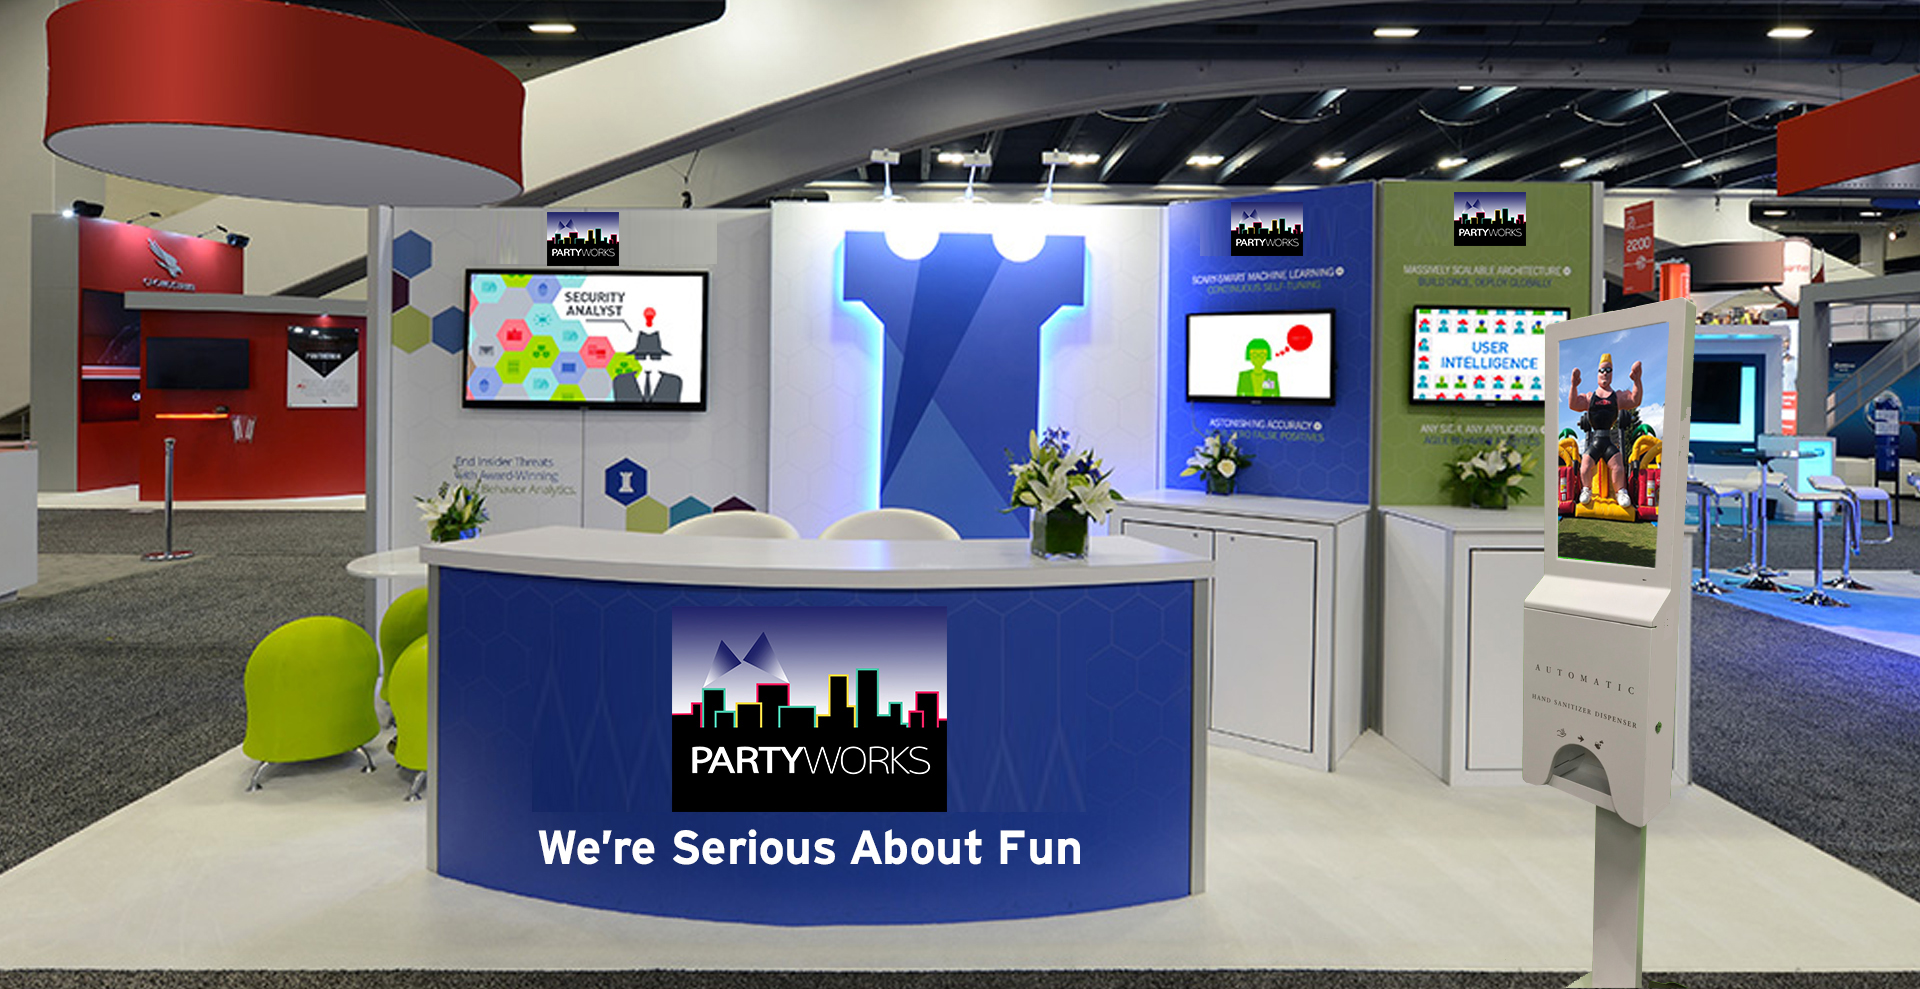 tradeshow stations u can sanitize, ucansanitize, hand sanitizer station, touchless products, hand sanitizer dispenser, hand sanitizer for events, hand sanitizer products, Hand Sanitizing Kiosks, LED Kiosks, Safety Kiosks, Employee Sanitizing Kiosks, antibacterial hand gel, antibacterial hand sanitizer, automatic hand sanitizer dispenser, wall mounted hand sanitizer, automatic hand sanitizer, automatic hand sanitiser dispenser, automatic hand sanitizer dispenser wall mounted, foam antibacterial hand sanitizer, Sanitizing Kiosk Rentals, Trade Show Events Sanitizing Kiosk Rentals, Casino Corporate Parties hand sanitizer station, Community Festivals hand sanitizer station, hand sanitizer station for Work Parties, hand sanitizer stations for Celebrations, Hand Sanitizer Dispensers for Bars, Hand Sanitizer Dispensers for Restaurants, Hand Sanitizer Dispensers for Exercise Training Gyms, Hand Sanitizer Dispensers for Sporting Arenas, Hand Sanitizer Dispensers for Hospitals, Hand Sanitizer Dispensers for Museums, Hand Sanitizer Dispensers for Movie Theatres, Hand Sanitizer Dispensers for Schools, Hand Sanitizer Dispensers for University, Hand Sanitizer Dispensers for High Schools, Hand Sanitizer Dispensers for Airports, Hand Sanitizer Dispensers for Hotels